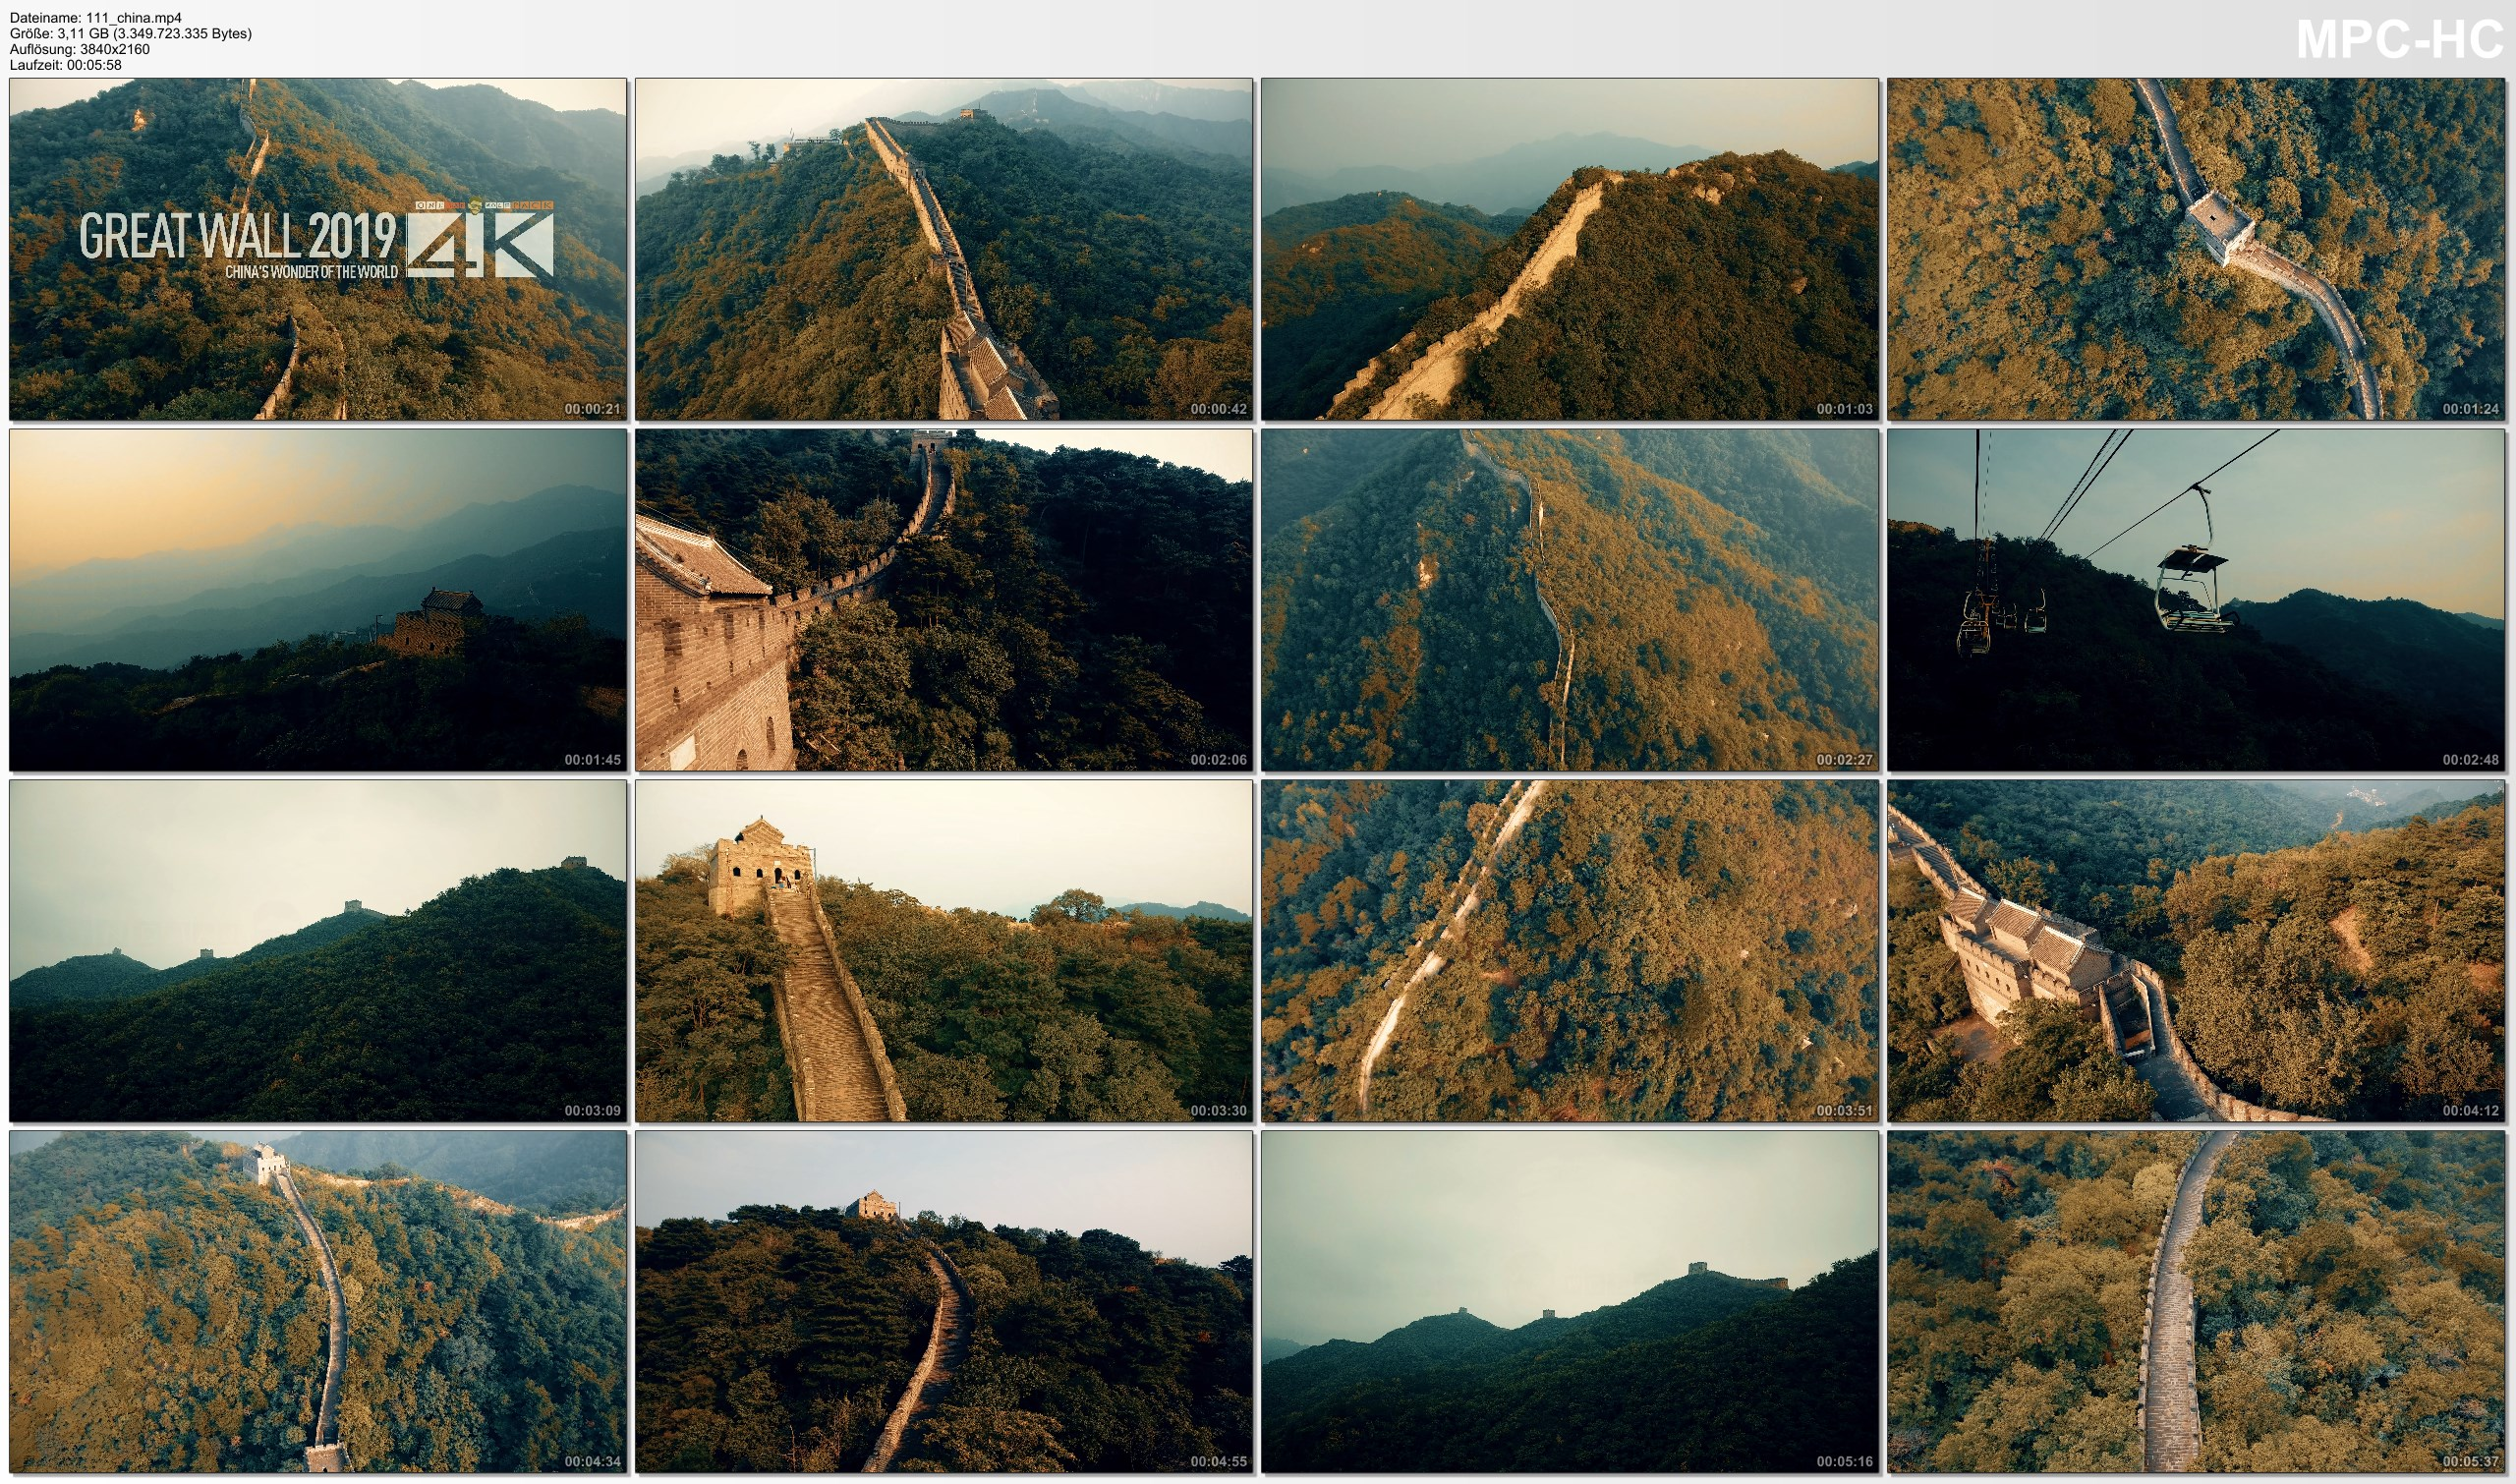 Drone Pictures from Video 【4K】Drone Footage | GREAT WALL 2019 ..:: Chinas Wonder of the World